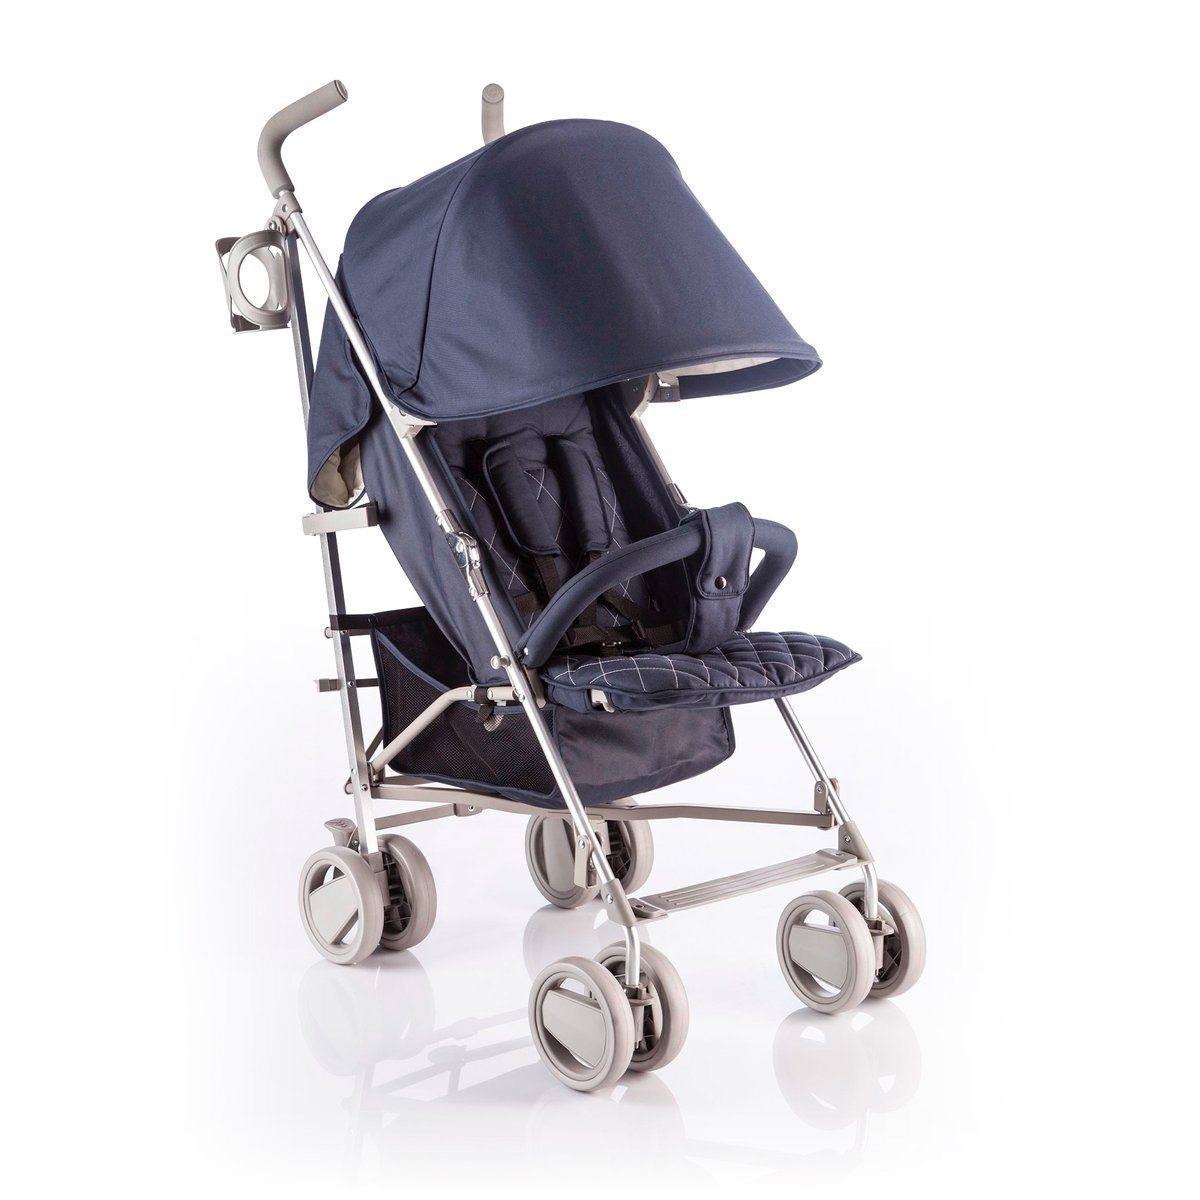 Buggy David von Babycab in dunkelblau